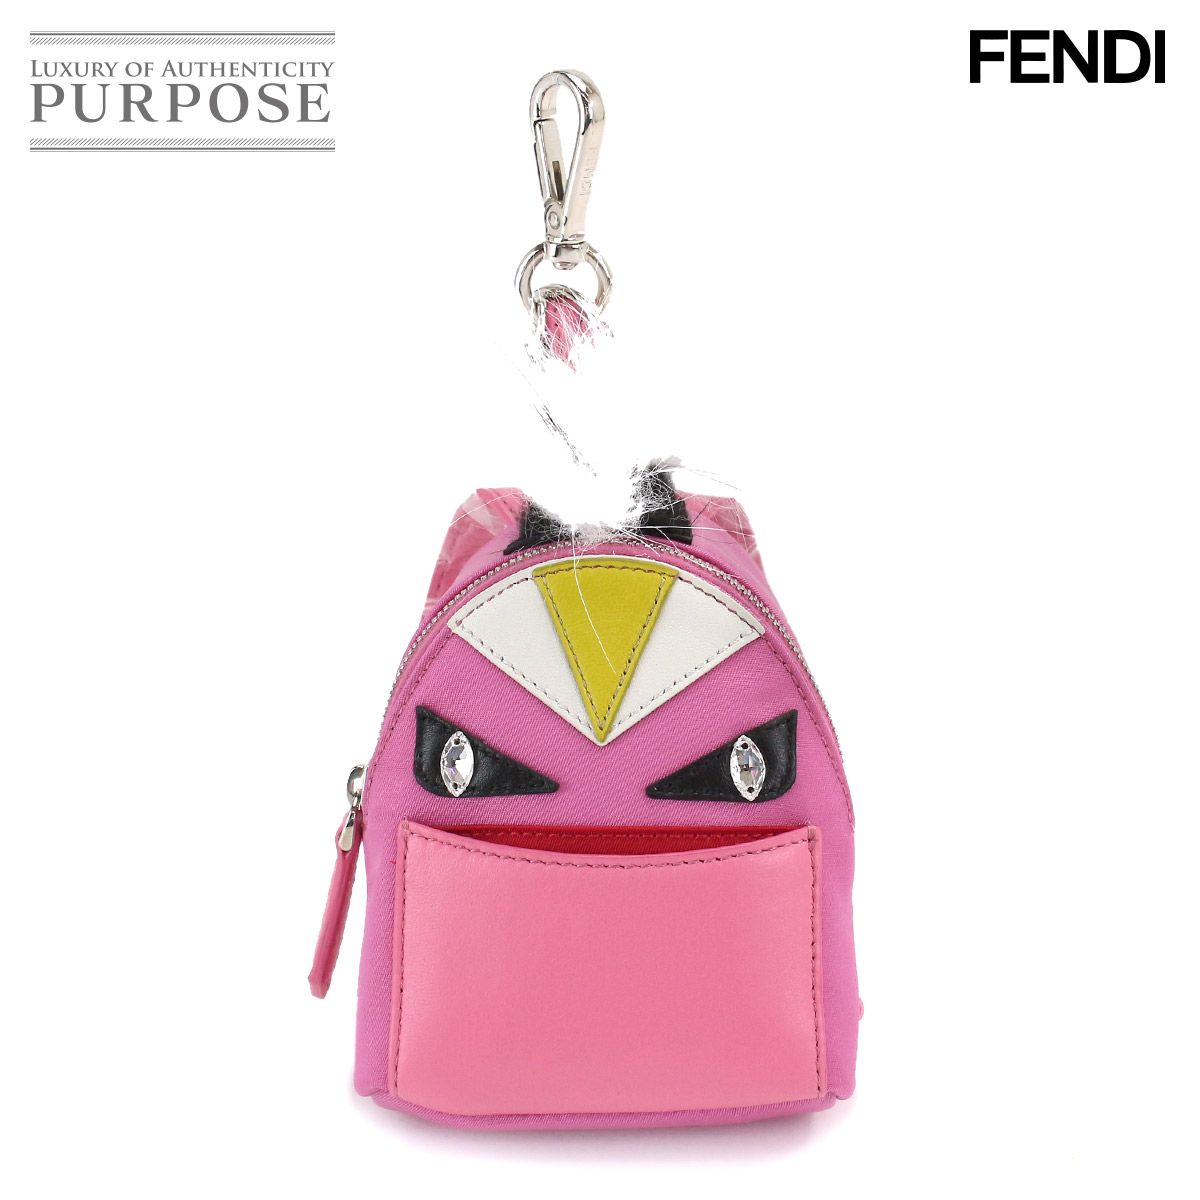 5d437701351f  unused display  Fendi FENDI monster bag bugs rucksack backpack charm nylon  leather Fox fur 7AR457 5PP  used  brand